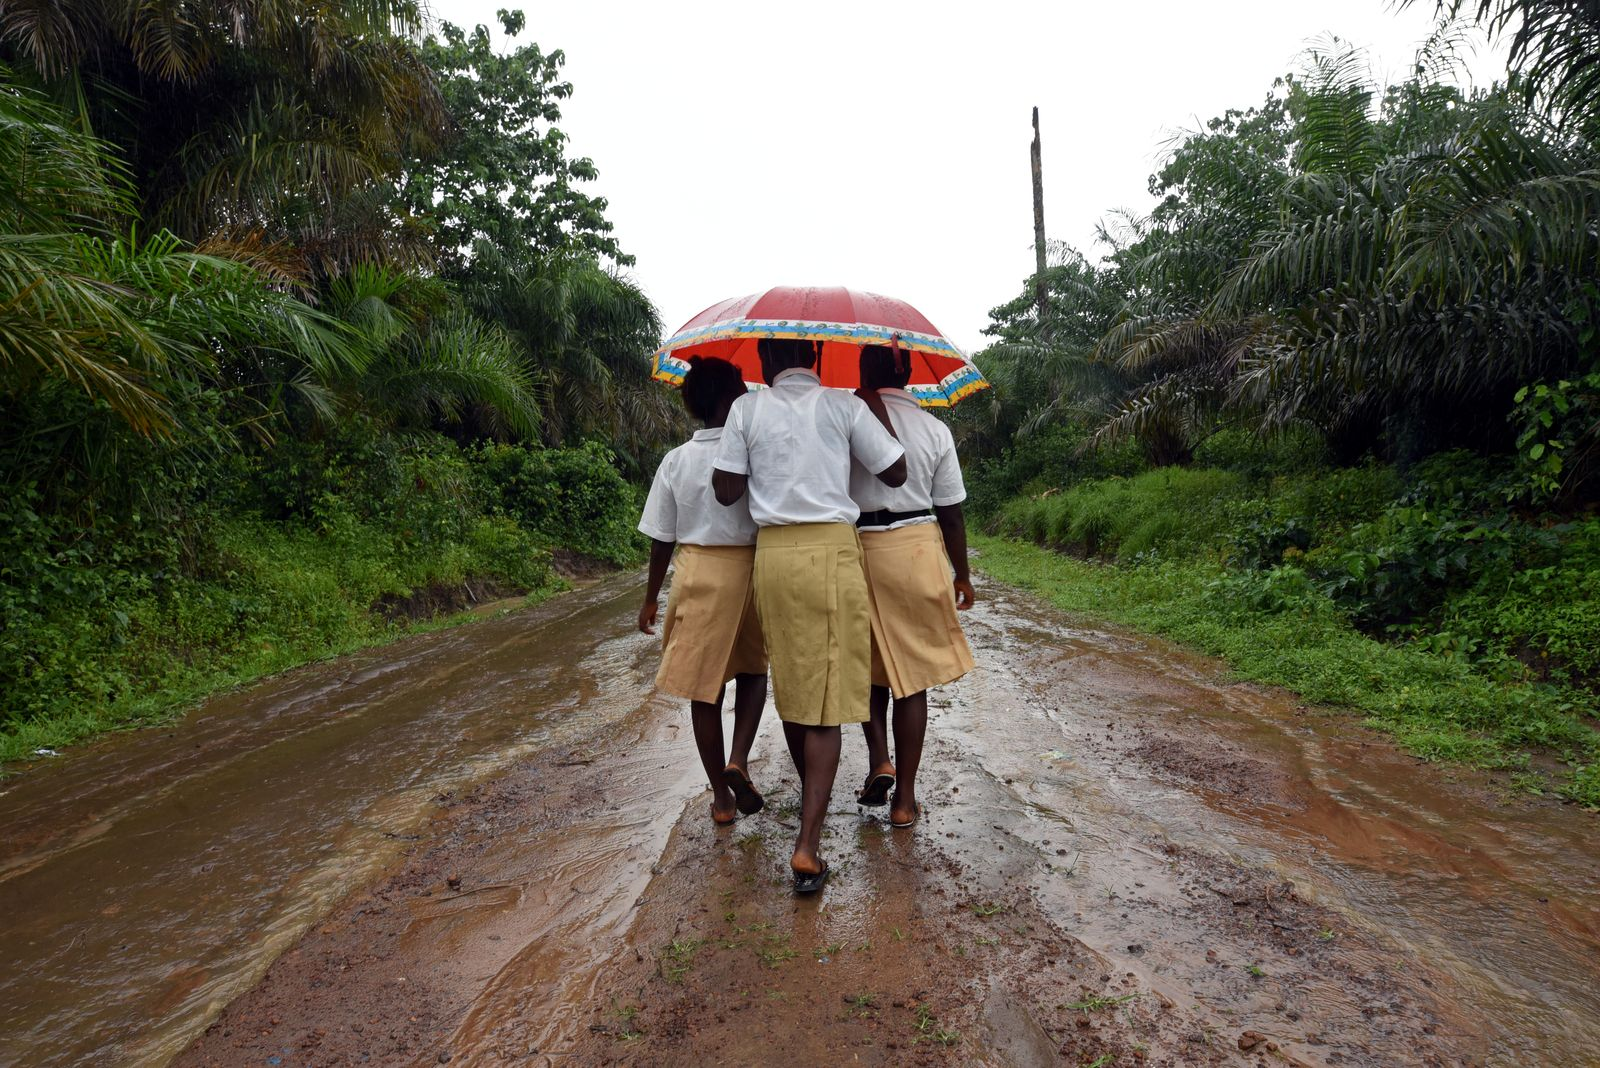 Mariatu Sesay, 15, walks home with her school mates in a countryside village of Sierra Leone